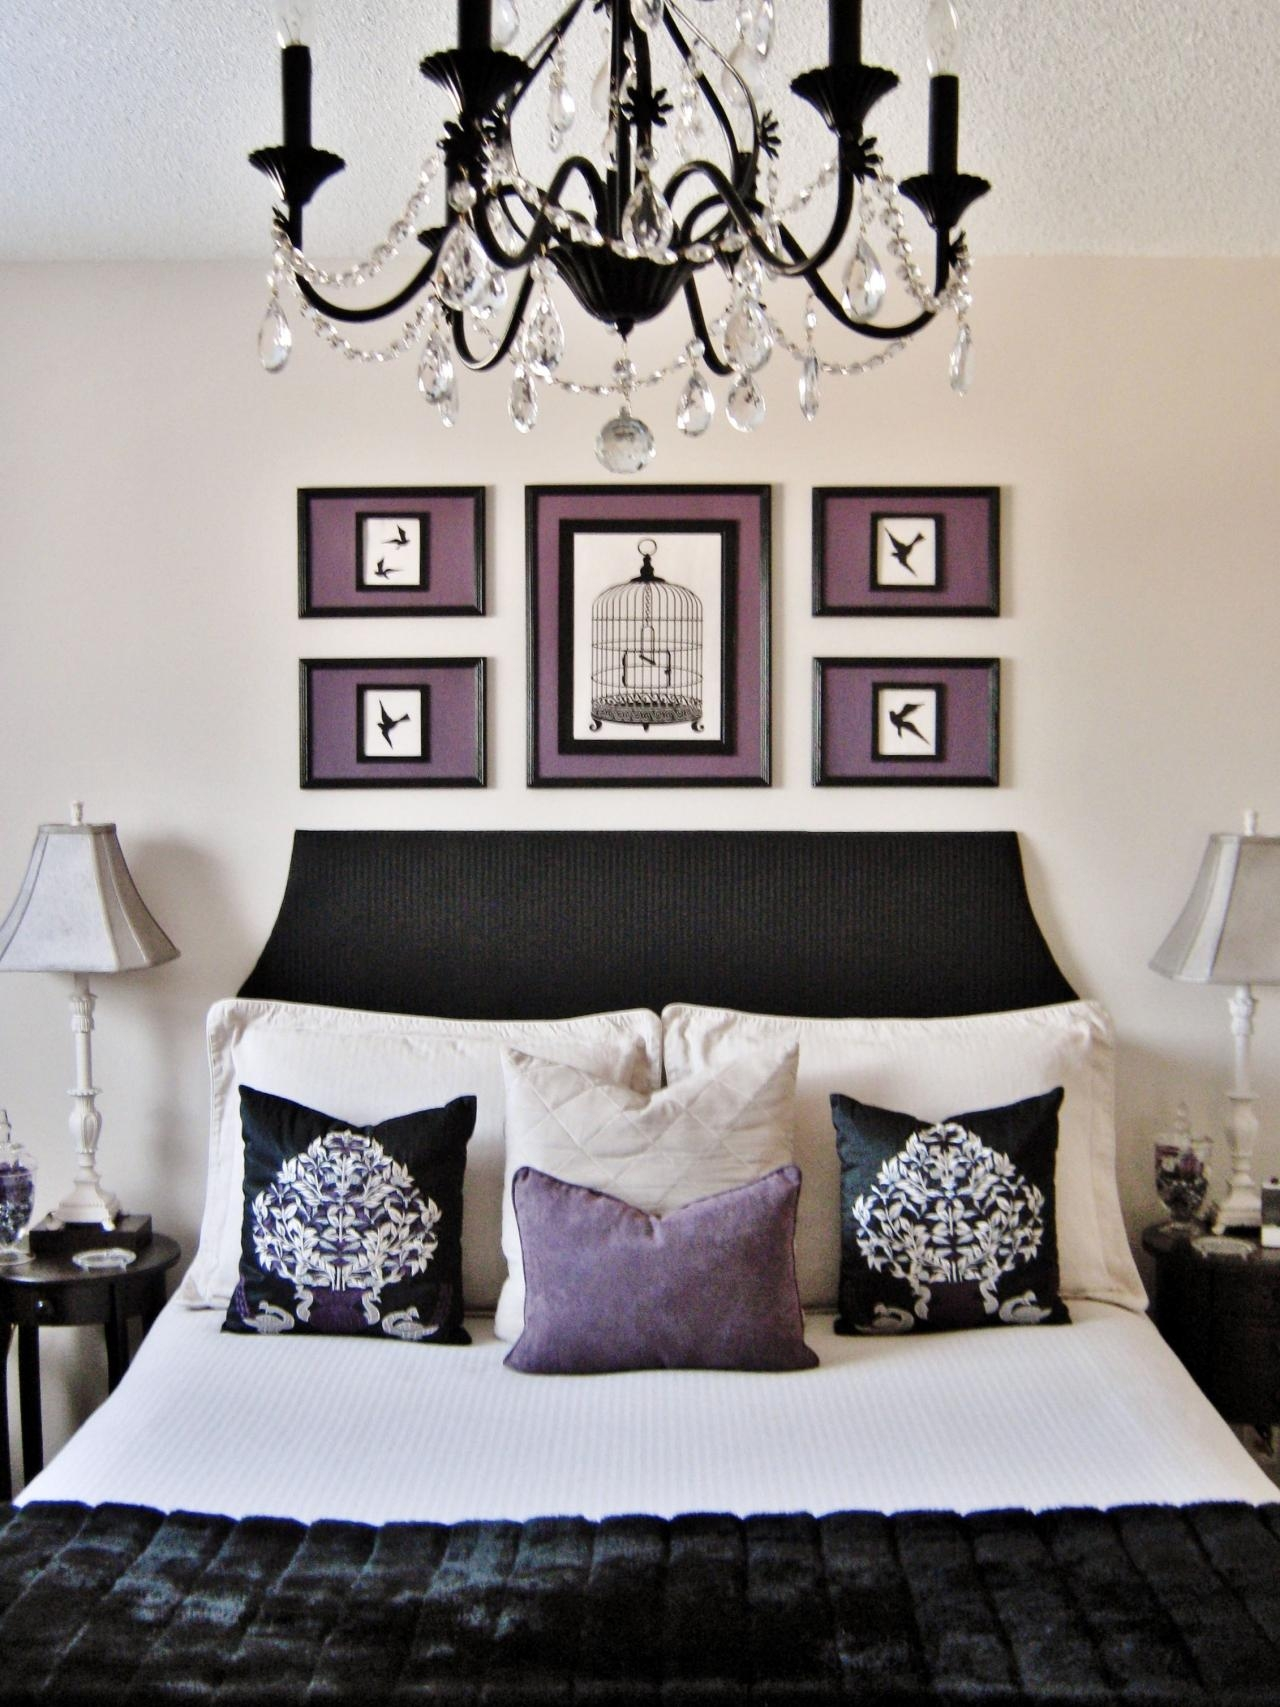 Black Chandelier For Bedroom Lightupmyparty Throughout Black Chandelier Bedroom (Image 7 of 15)